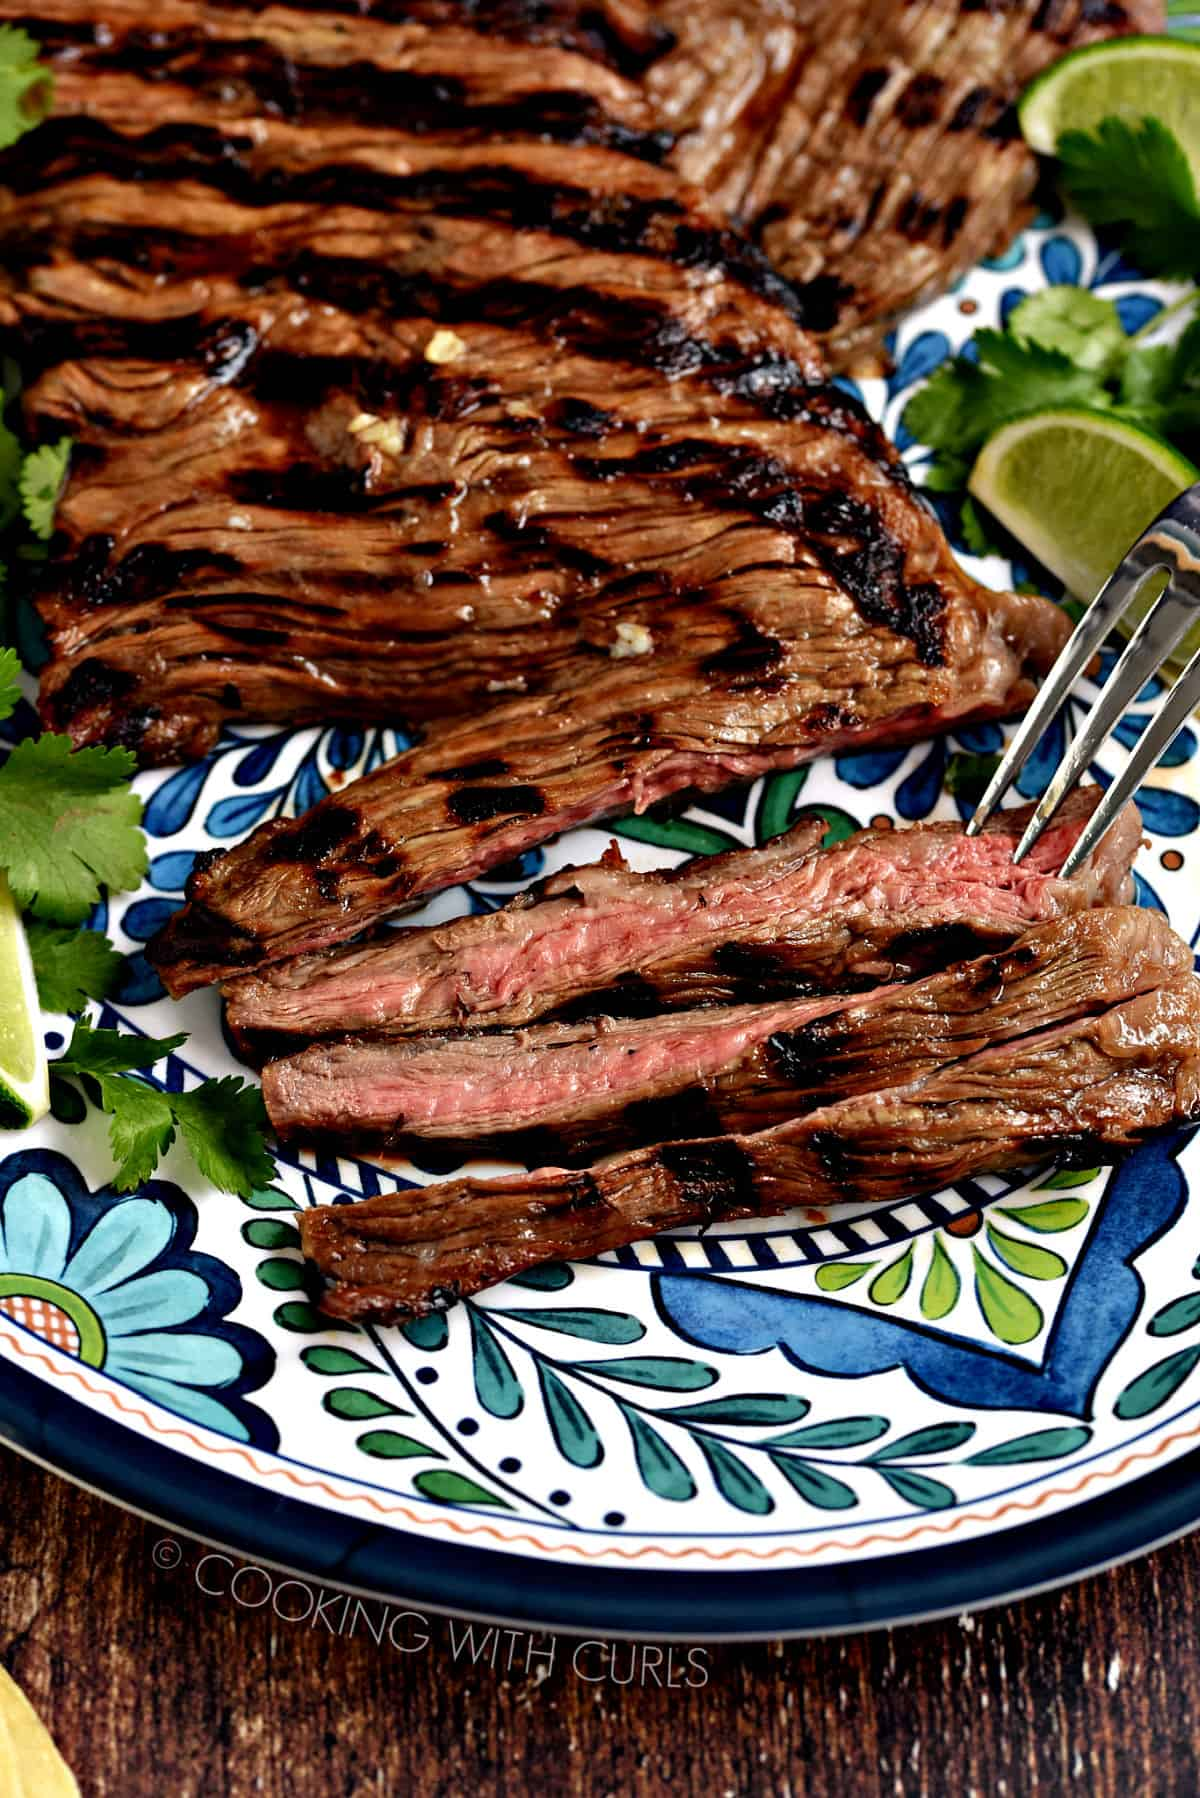 Grilled skirt steak on a decorative platter with lime wedges and cilantro leaves.